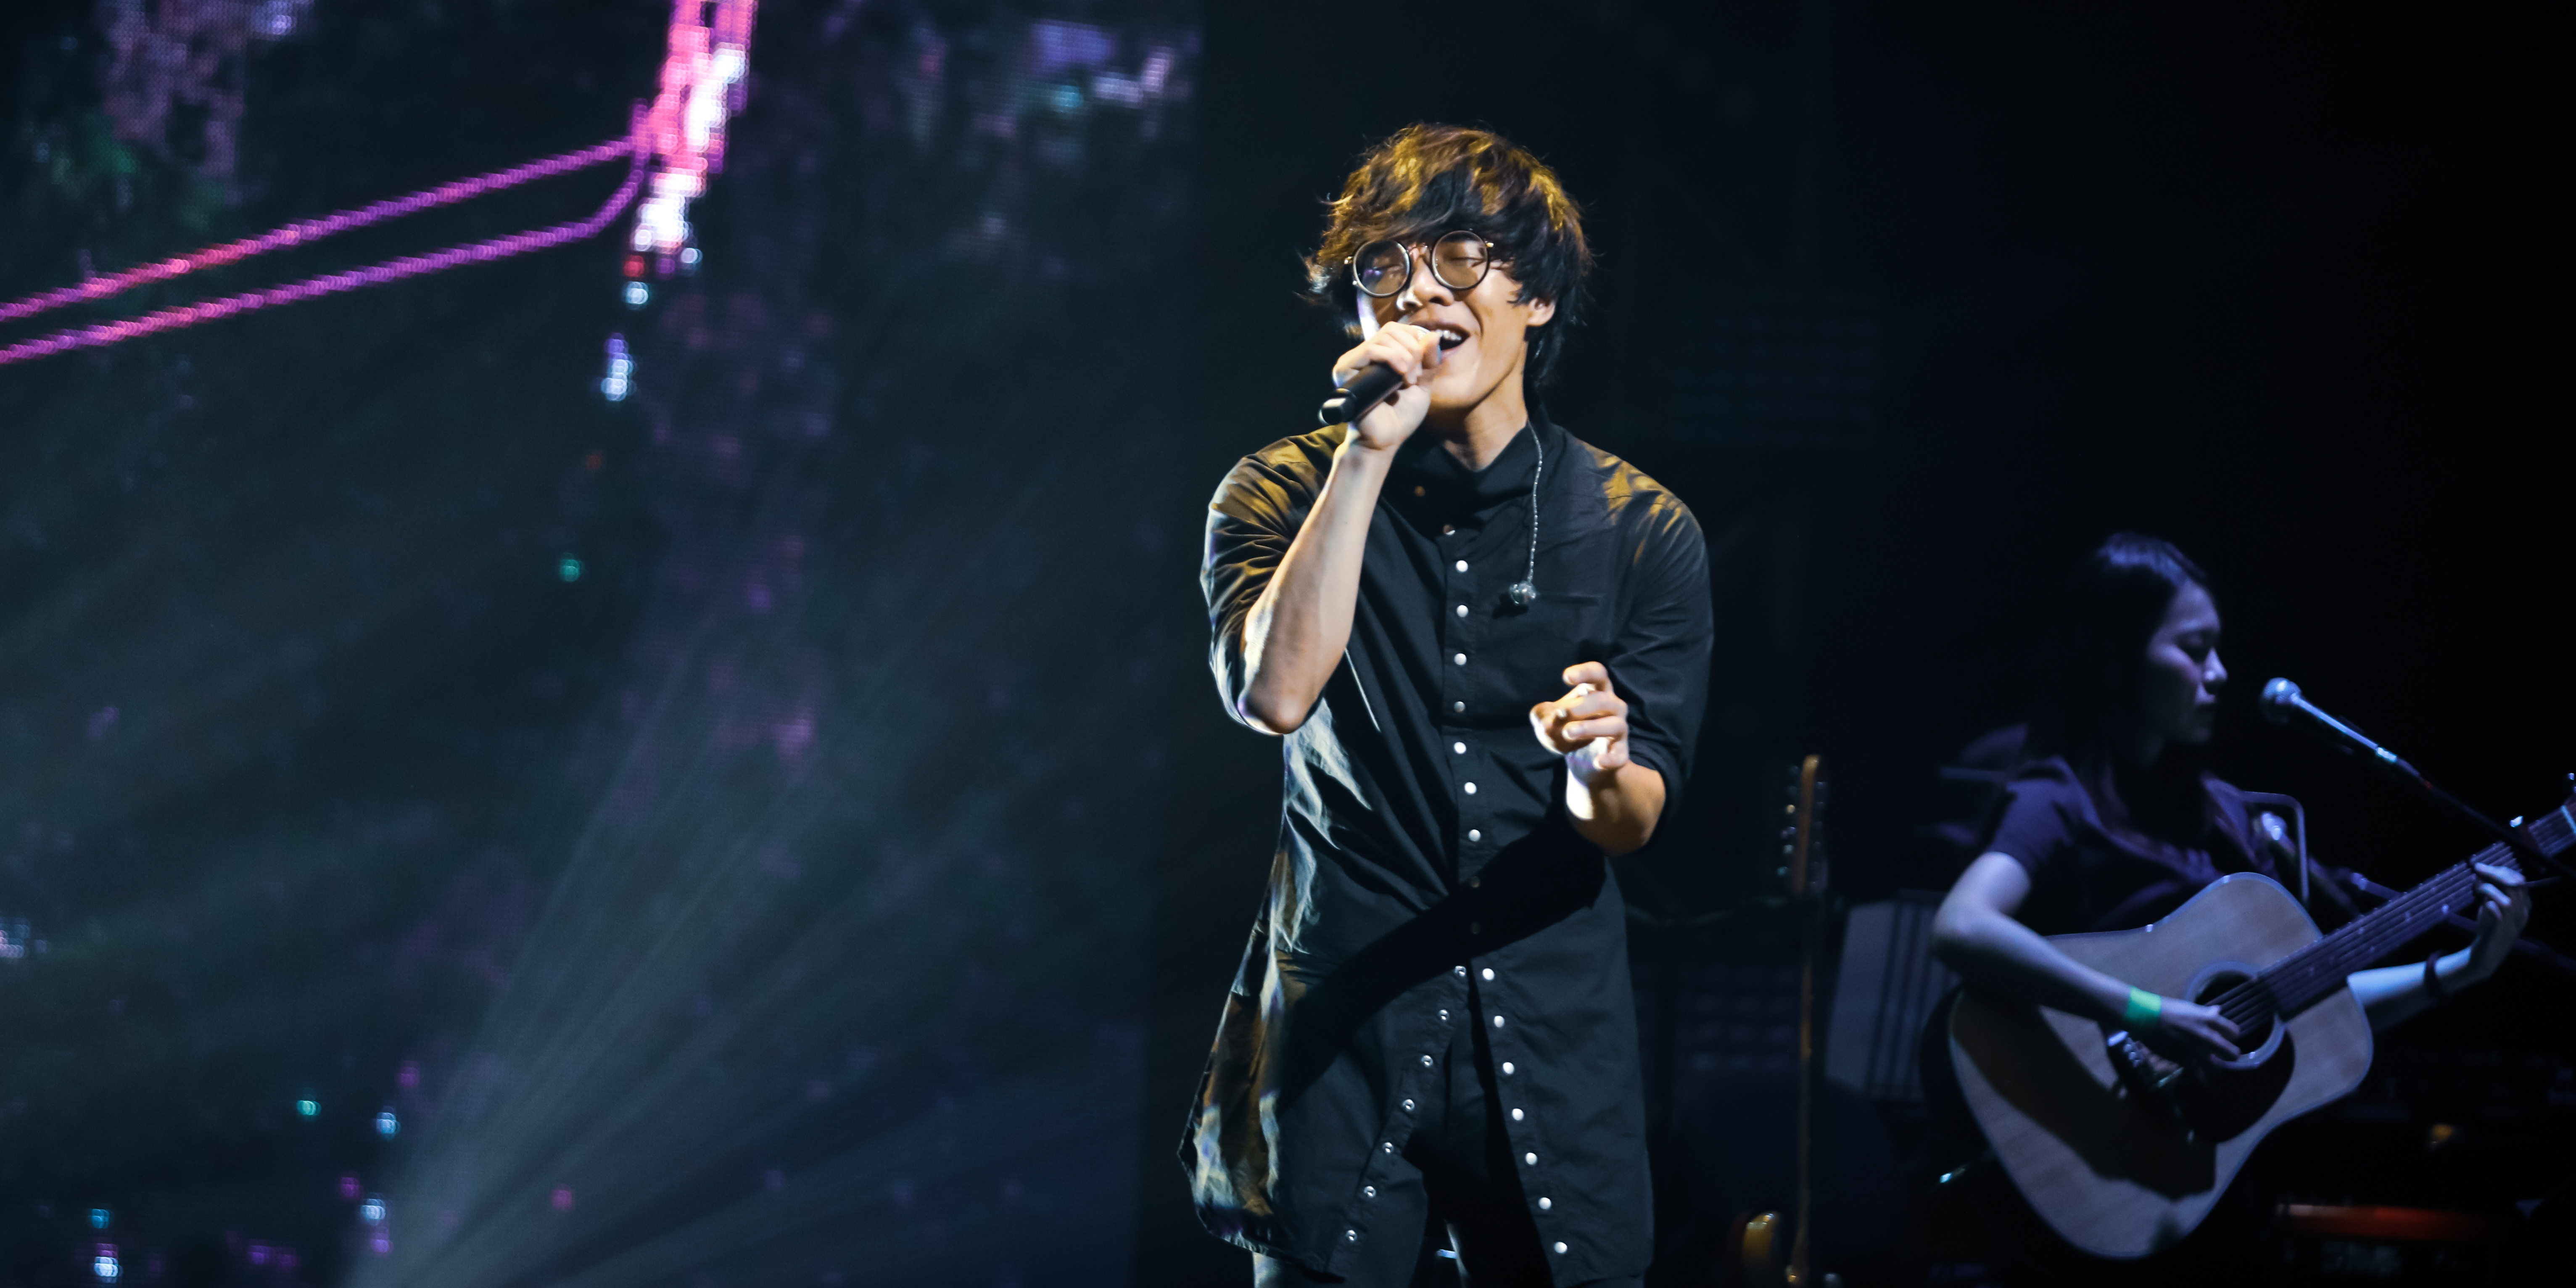 Crowd Lu made a glorious case for love at Singapore show – gig report